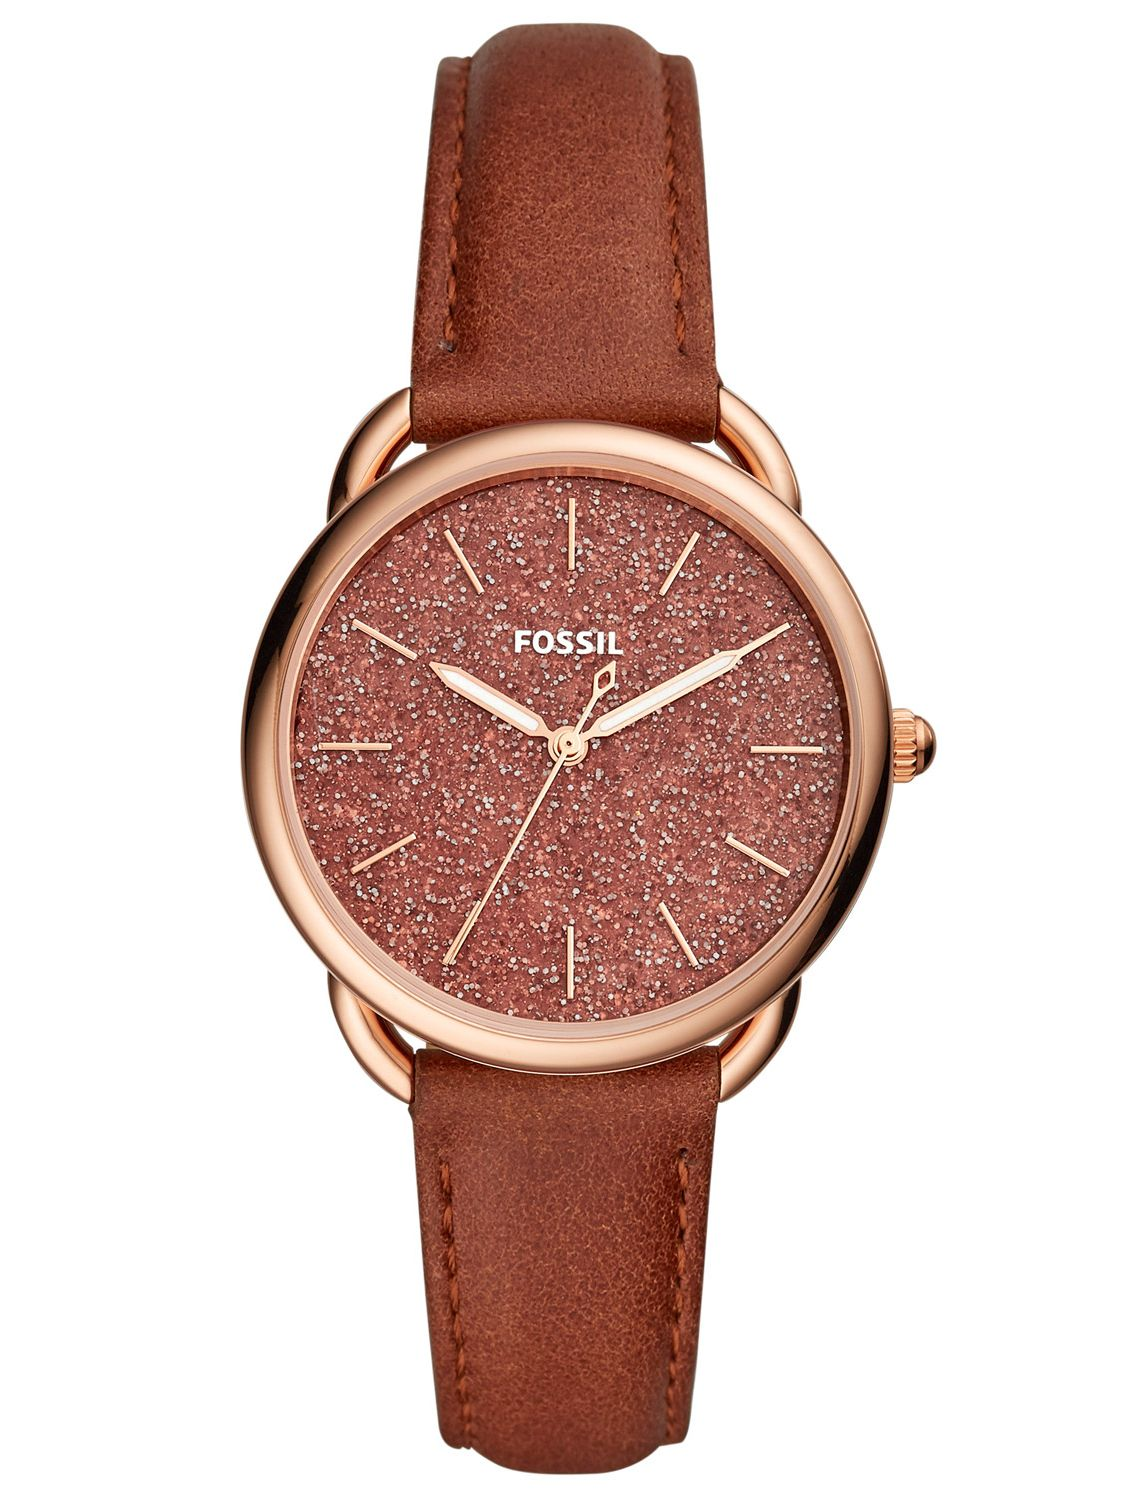 17824f021 FOSSIL Ladies' Watch Tailor ES4420 • uhrcenter Watches Shop